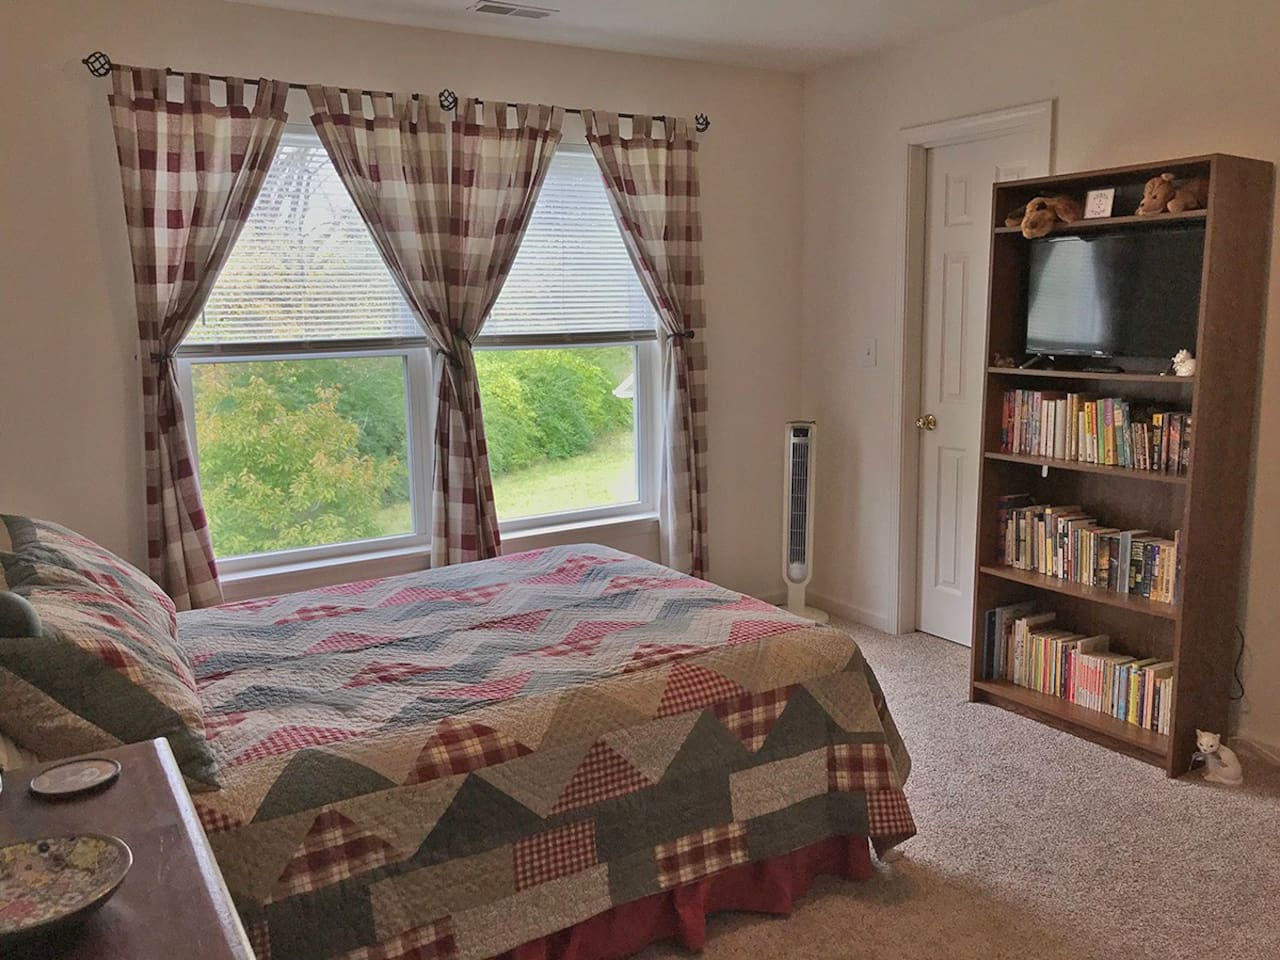 Private bedroom with wooded view